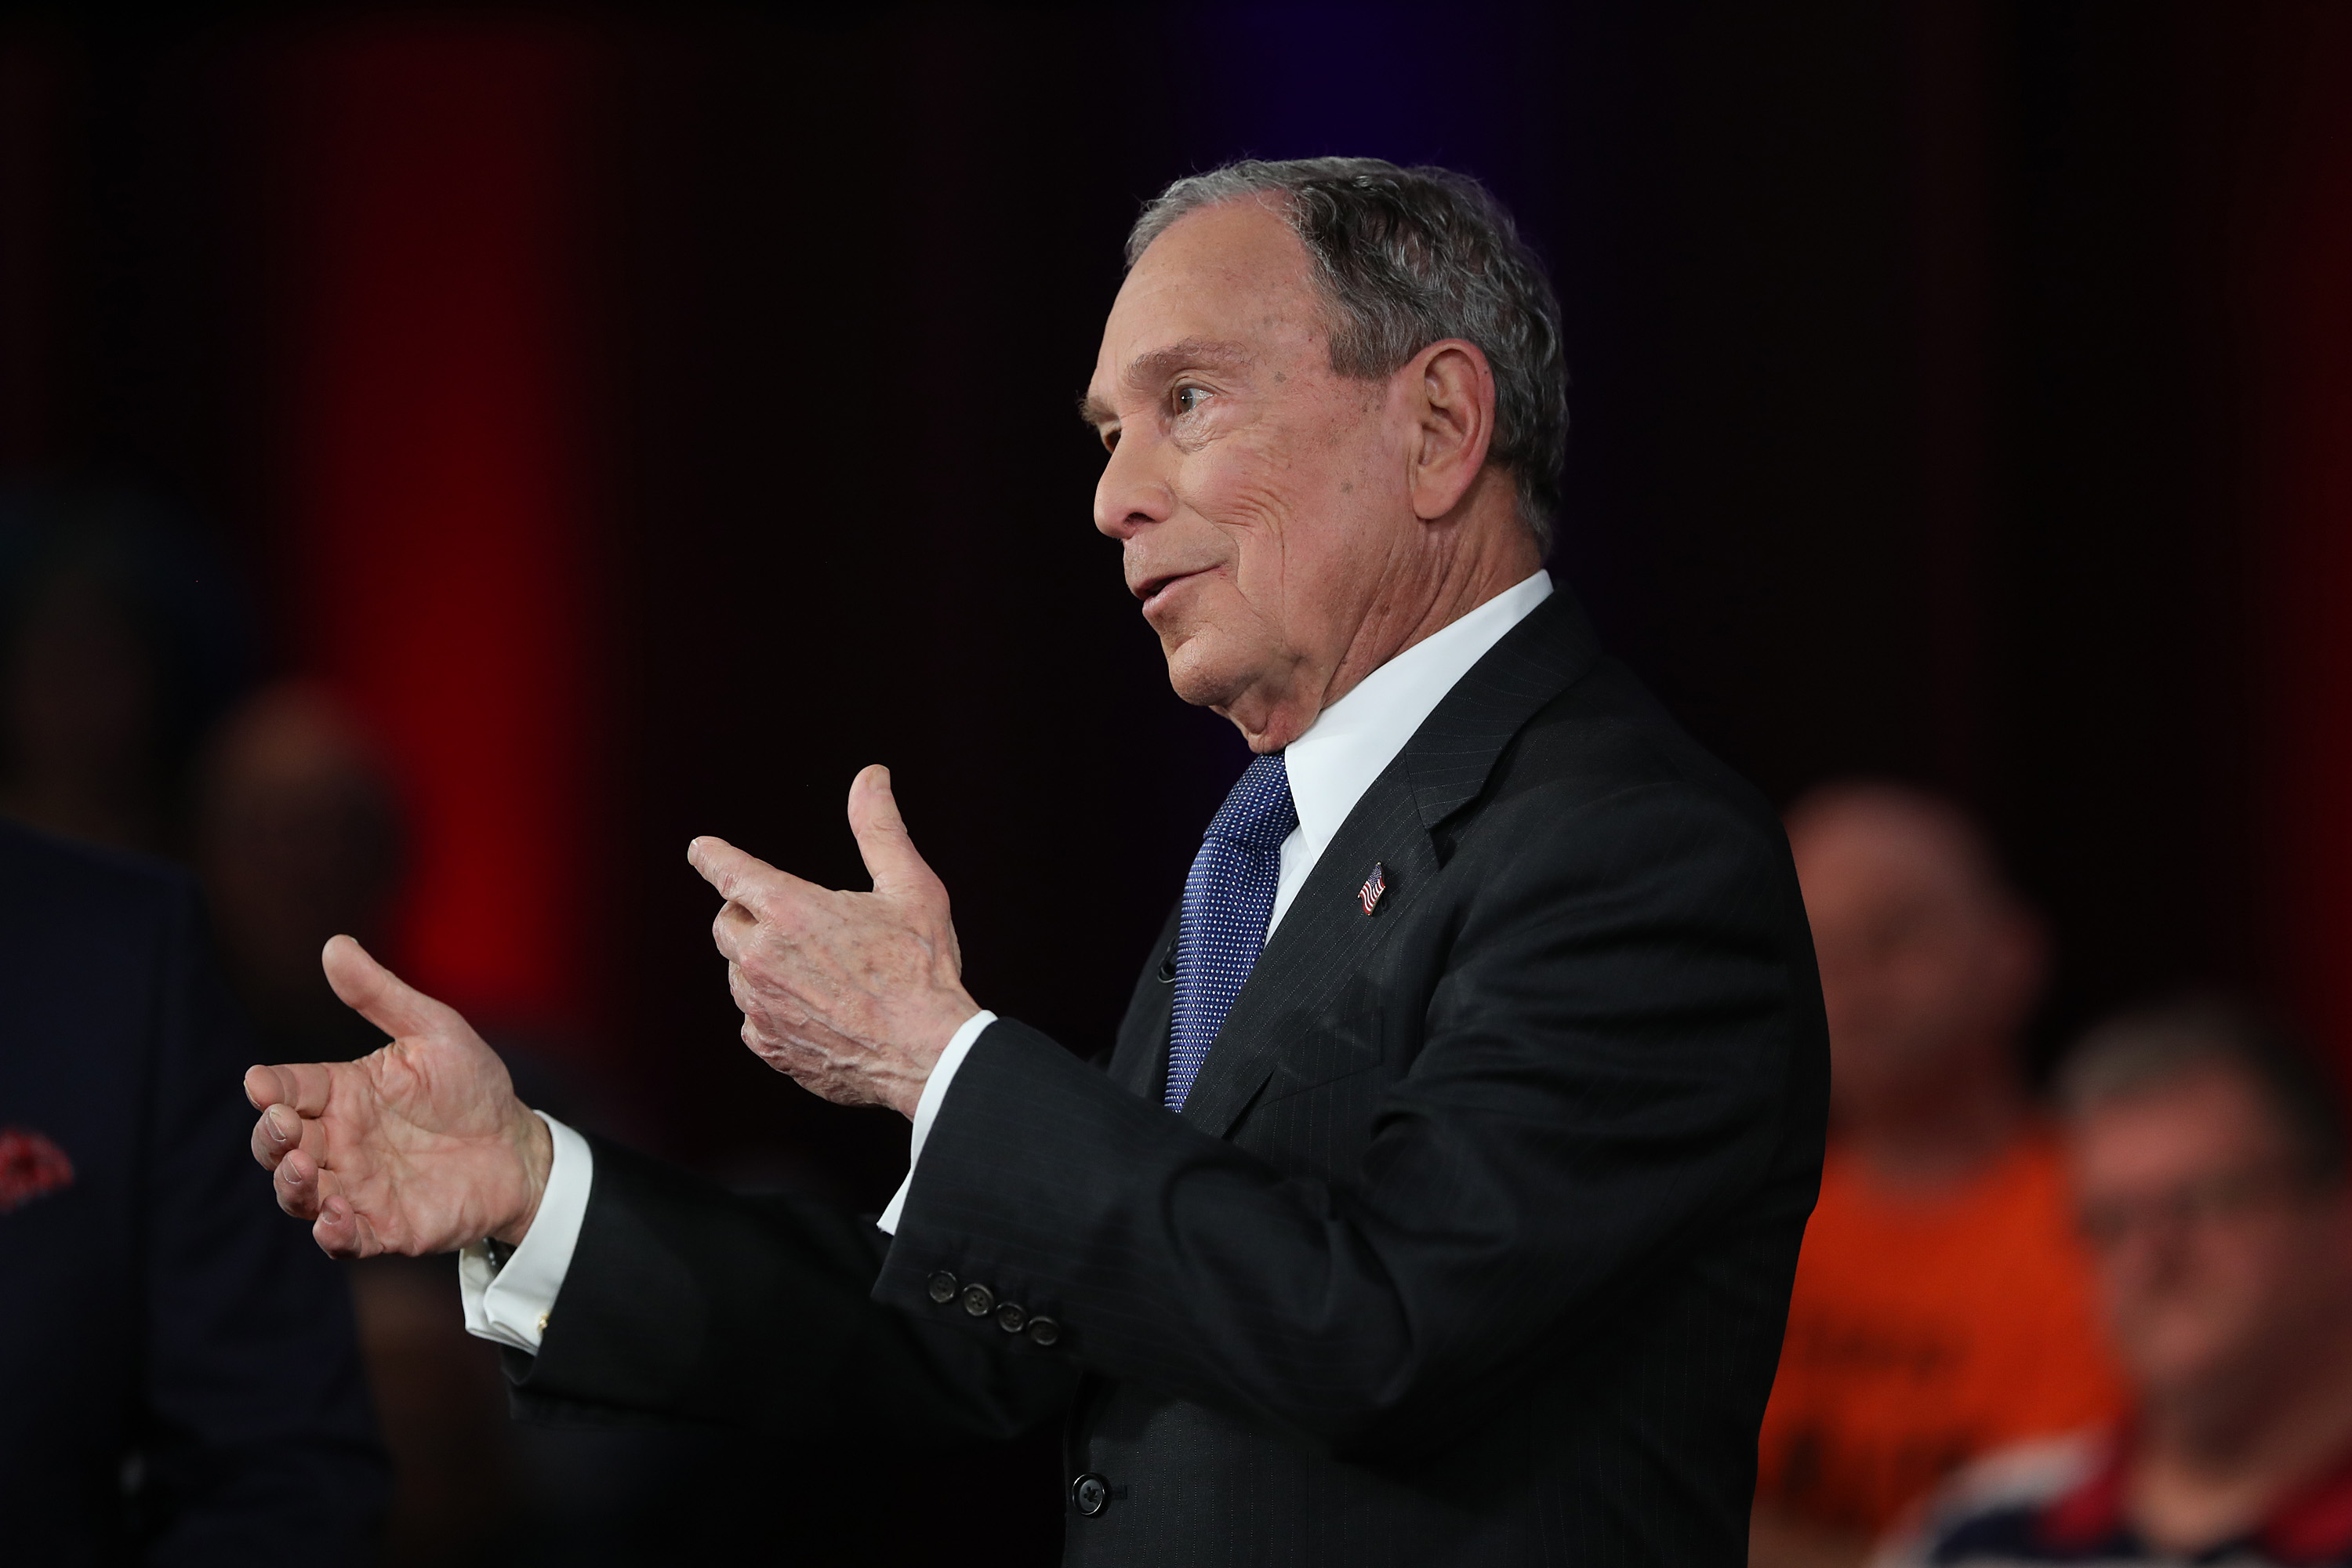 MANASSAS, VA - MARCH 02: Democratic presidential candidate, former New York City mayor Mike Bloomberg participates in a Fox News town hall held at the Hilton Performing Arts Center at George Mason on March 2, 2020 in Manassas, VA. Mr. Bloomberg appeared in the FOX News Town Hall co-moderated by Special Report's Bret Baier alongside The Story's Martha MacCallum the evening before voting starts on Super Tuesday. (Photo by Joe Raedle/Getty Images)